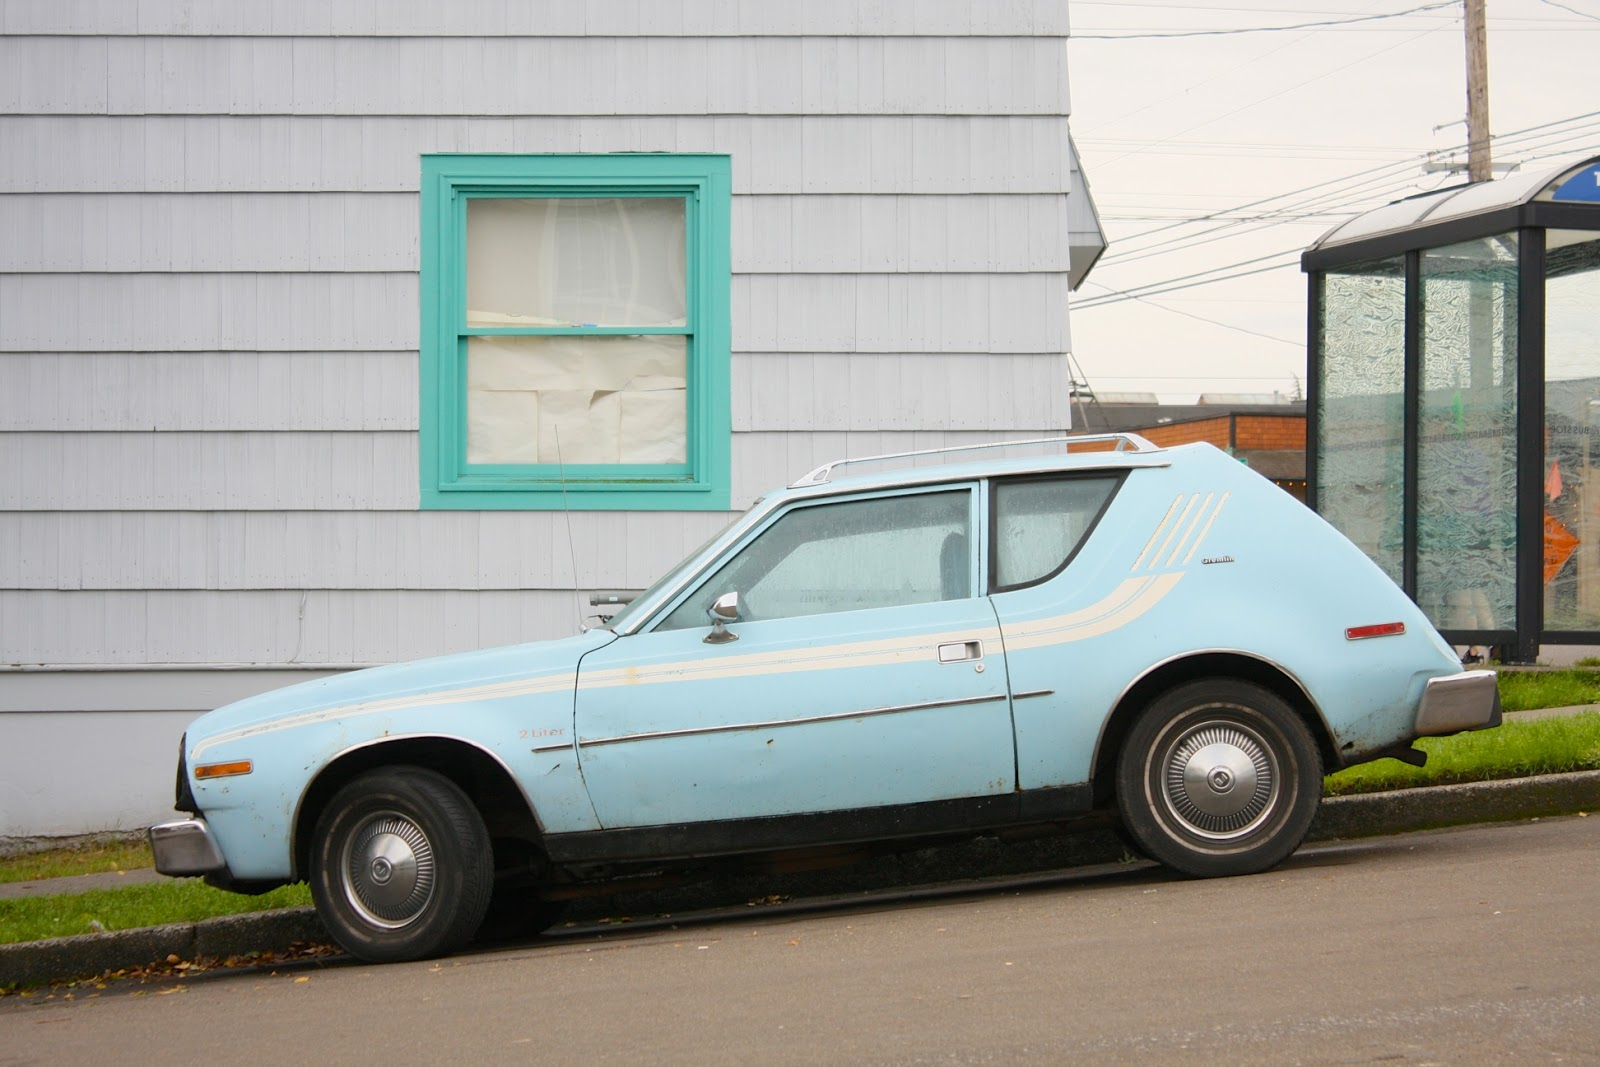 1977 AMC Gremlin Hatchback.